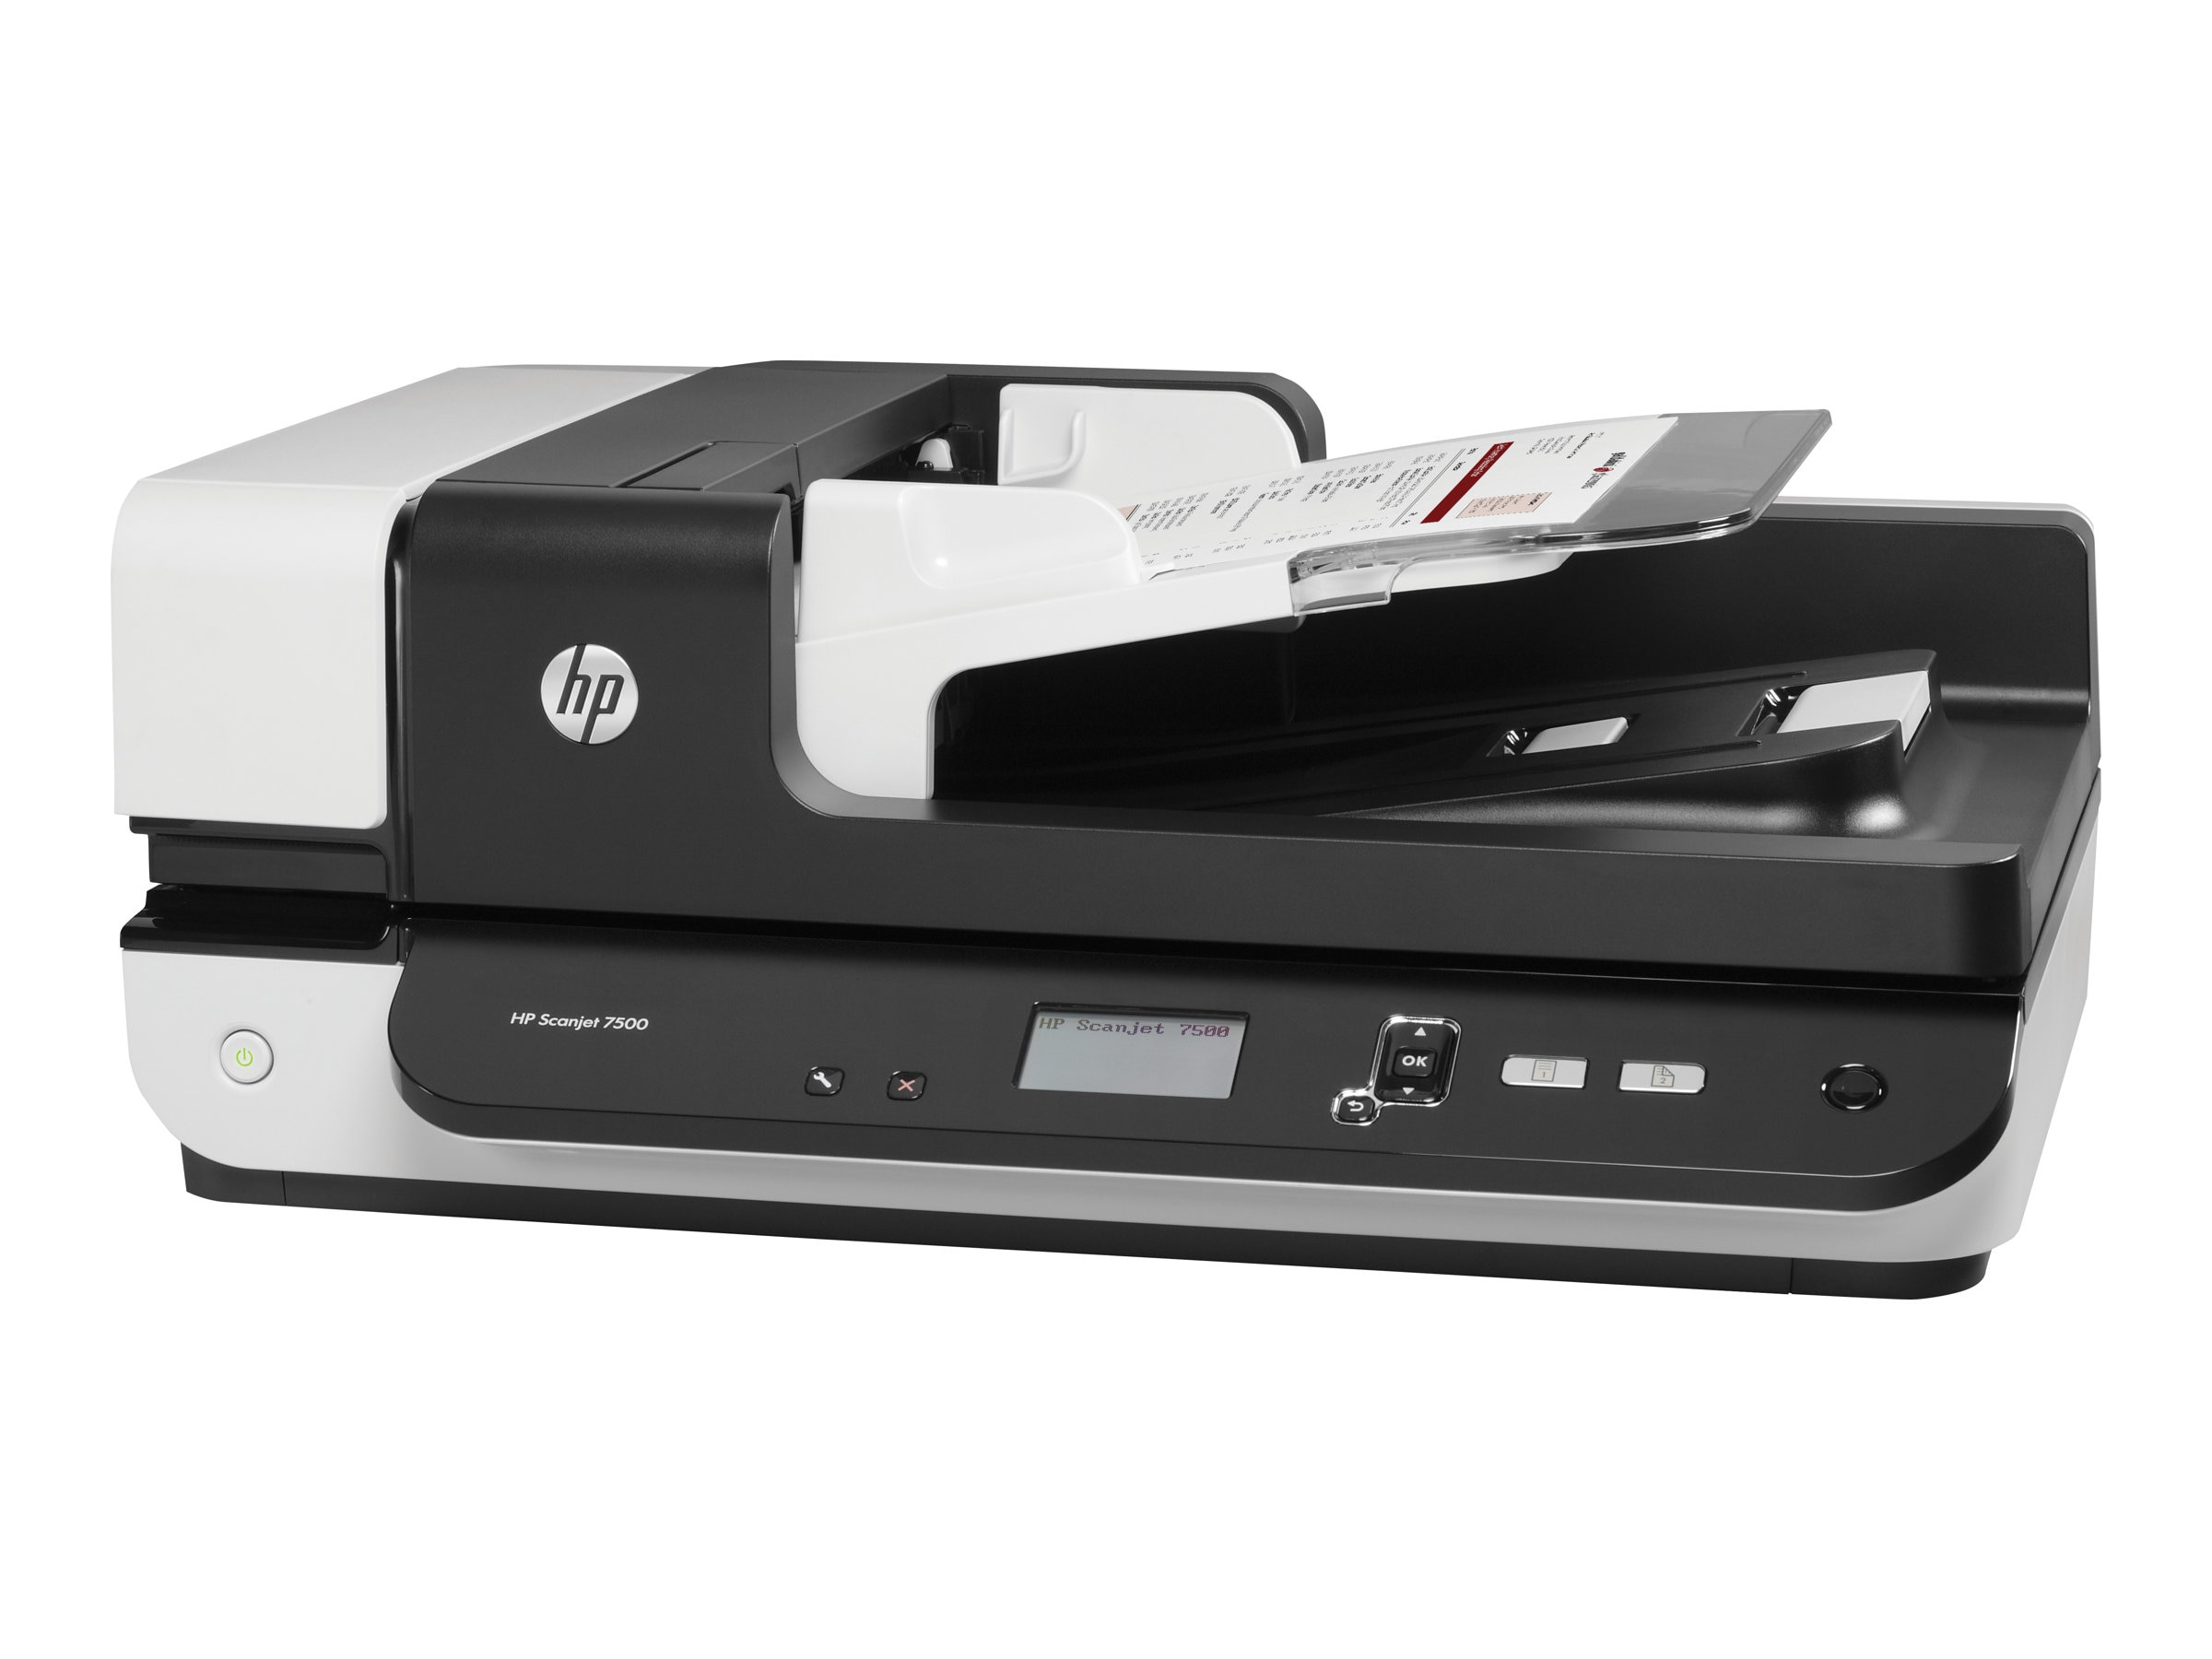 HP ScanJet Enterprise Flow 7500 ($1,349 - 200 Instant Rebate = $1,149 Expires May 31, 2016), L2725B#BGJ